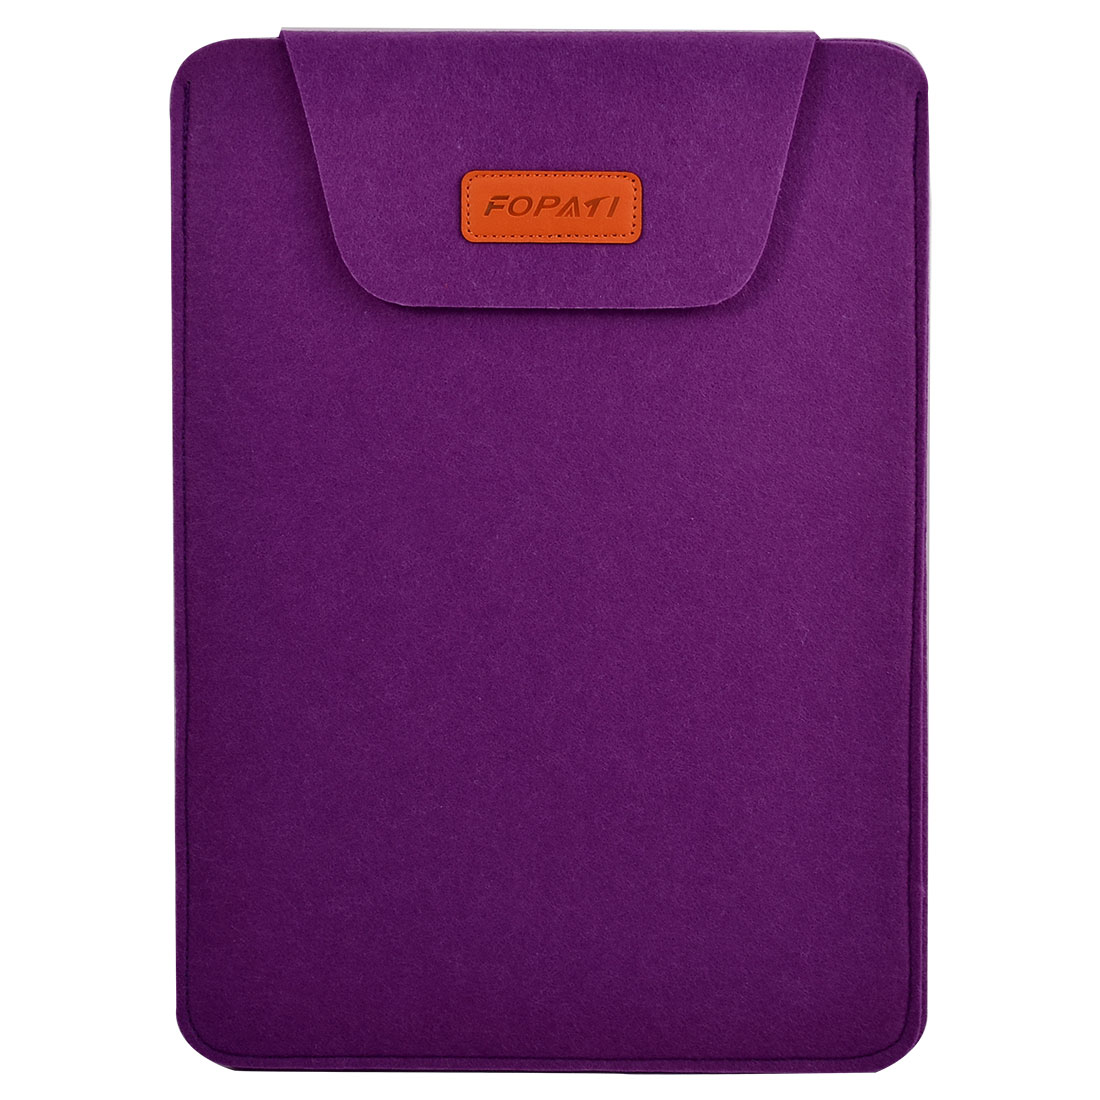 Computer Wool Felt Universal Protective Skin Notebook Sleeve Case Purple for 12 Inch Laptop